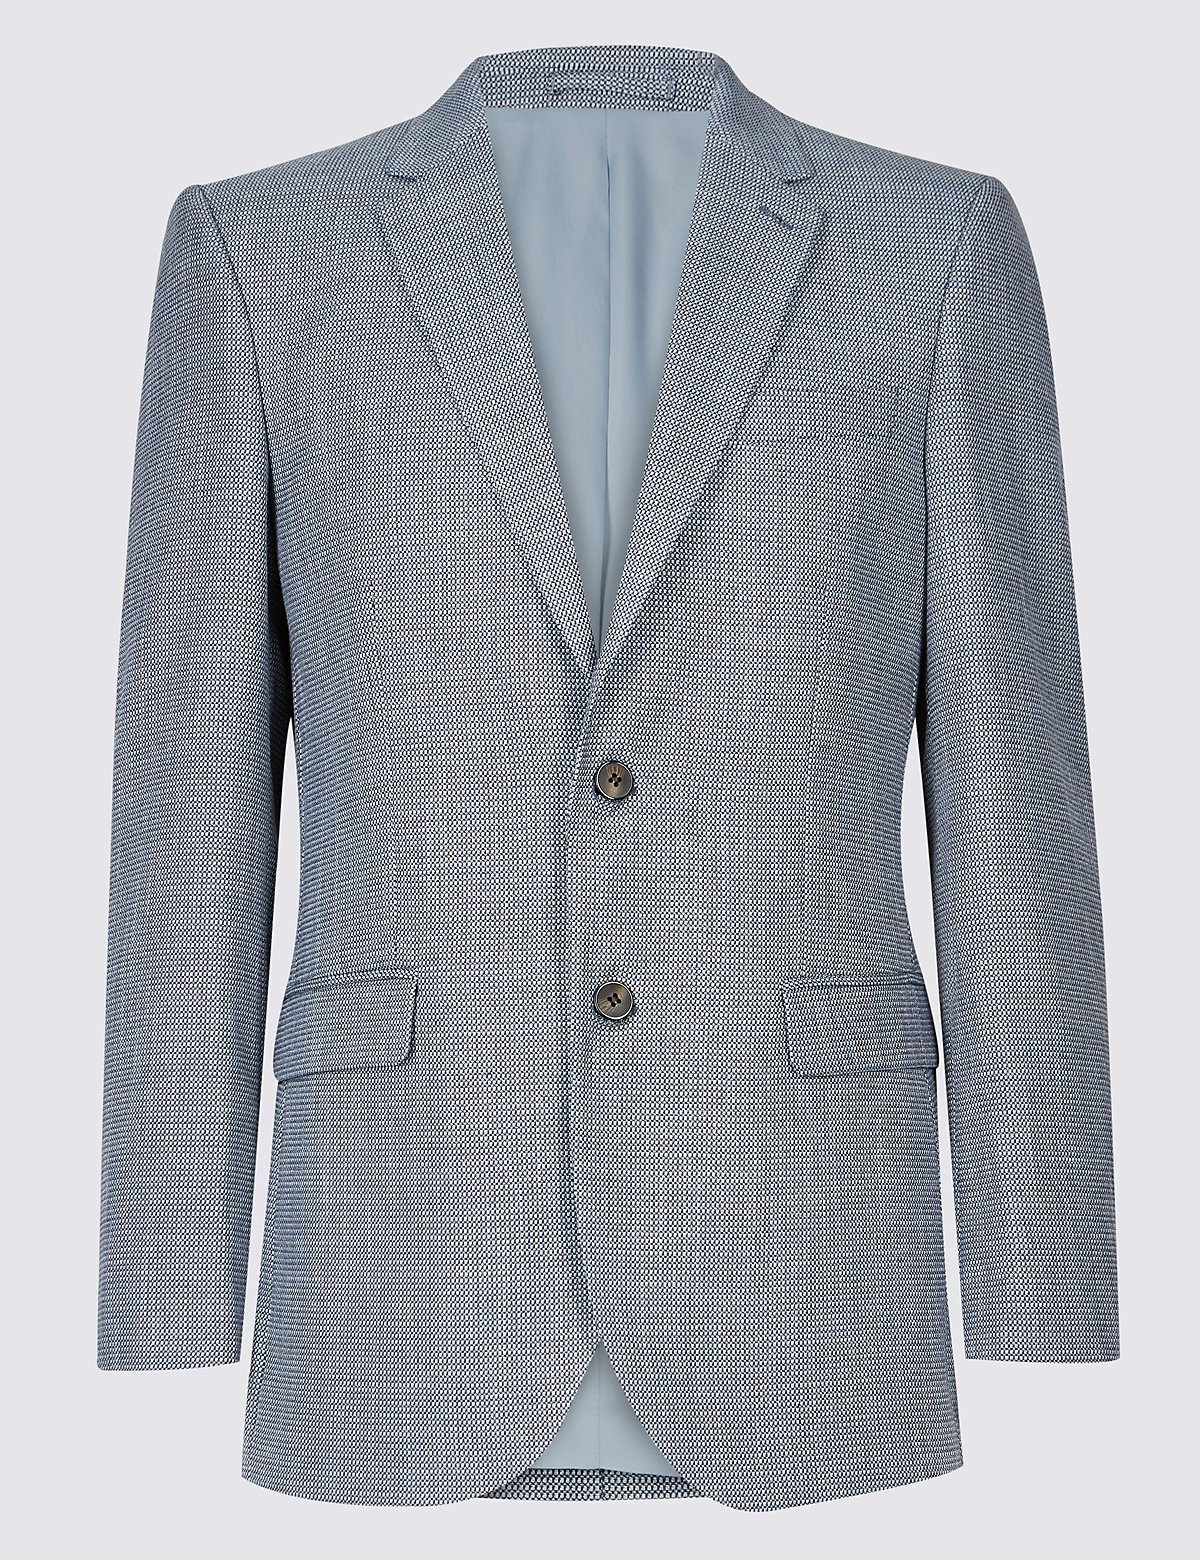 Marks & Spencer Blue Textured 2 Button Jacket